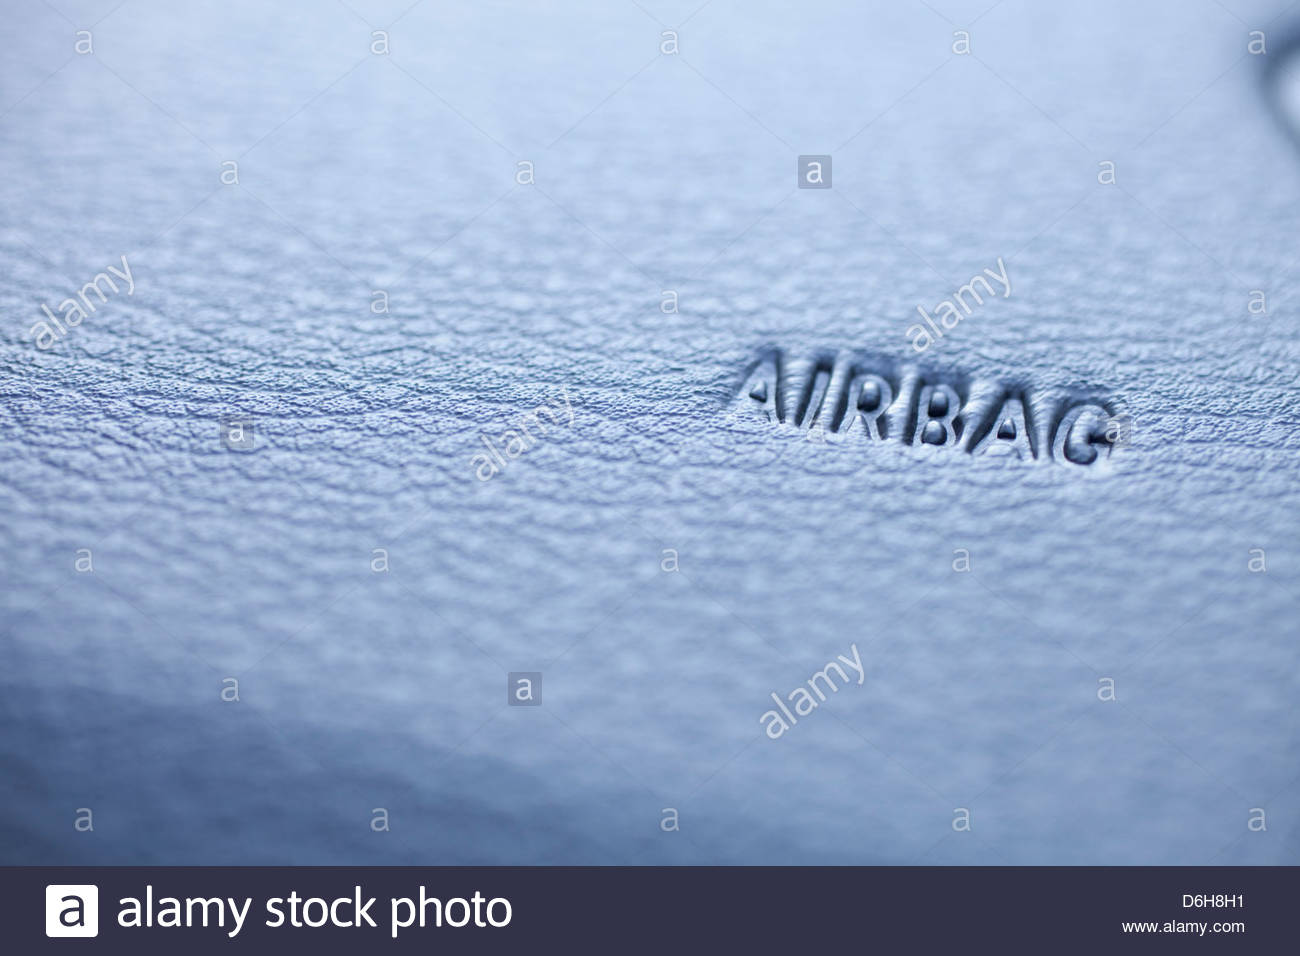 Close Up Car Airbag Sign Dashboard Stock Photo Royalty Free Image - Car image sign of dashboard